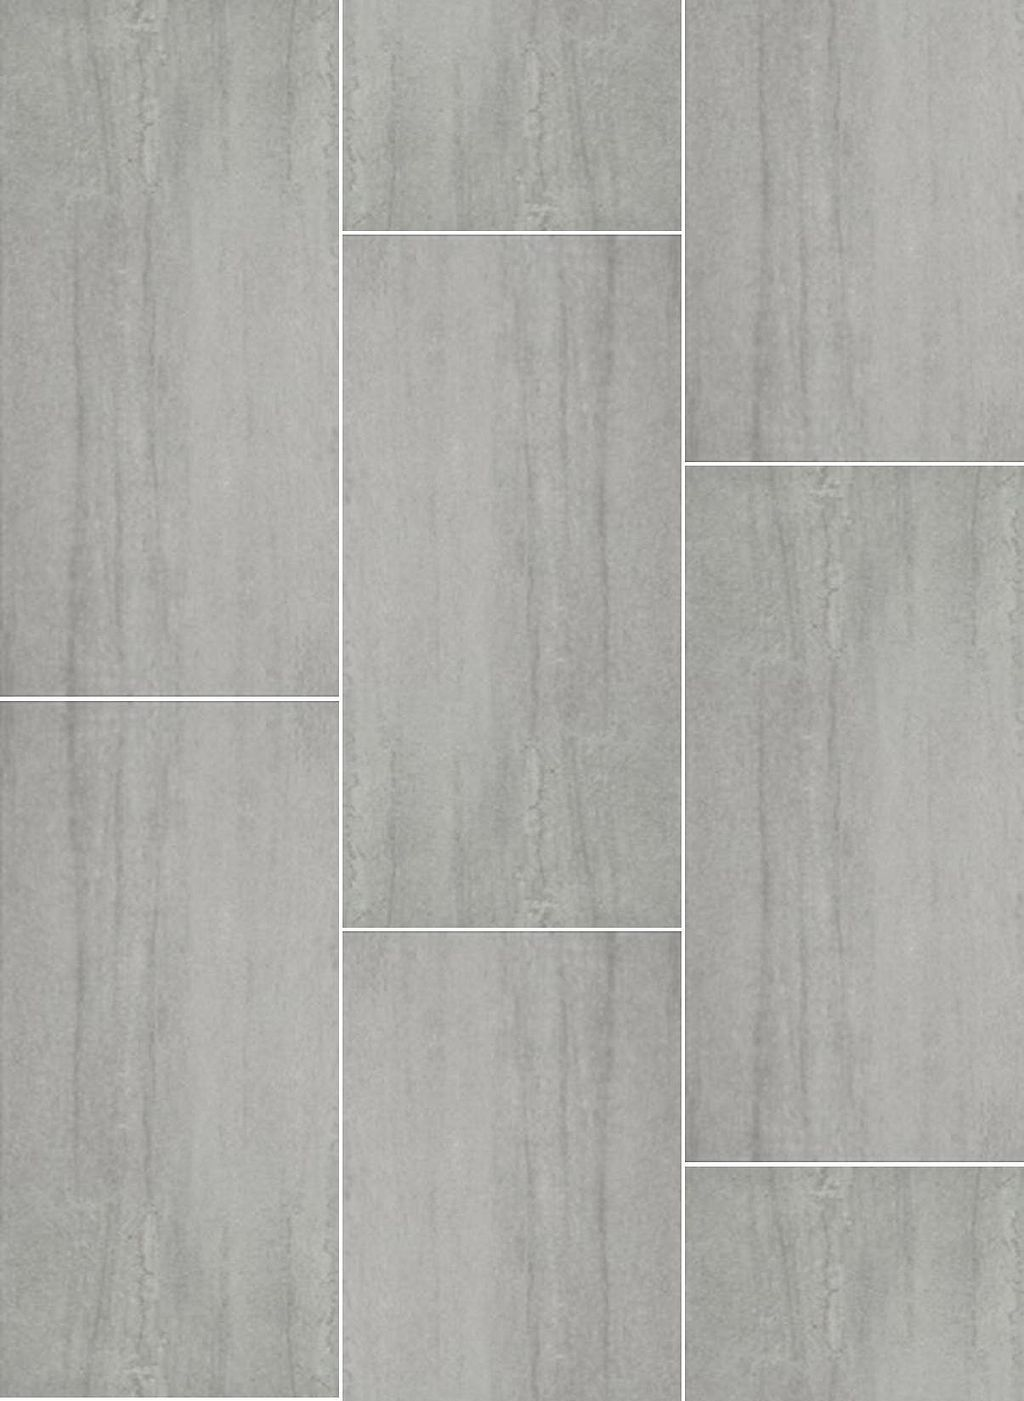 Awesome Tile Texture Ideas For Your Wall And Floor 89 Kawaii Interior Grey Flooring Grey Floor Tiles Gray Tile Bathroom Floor